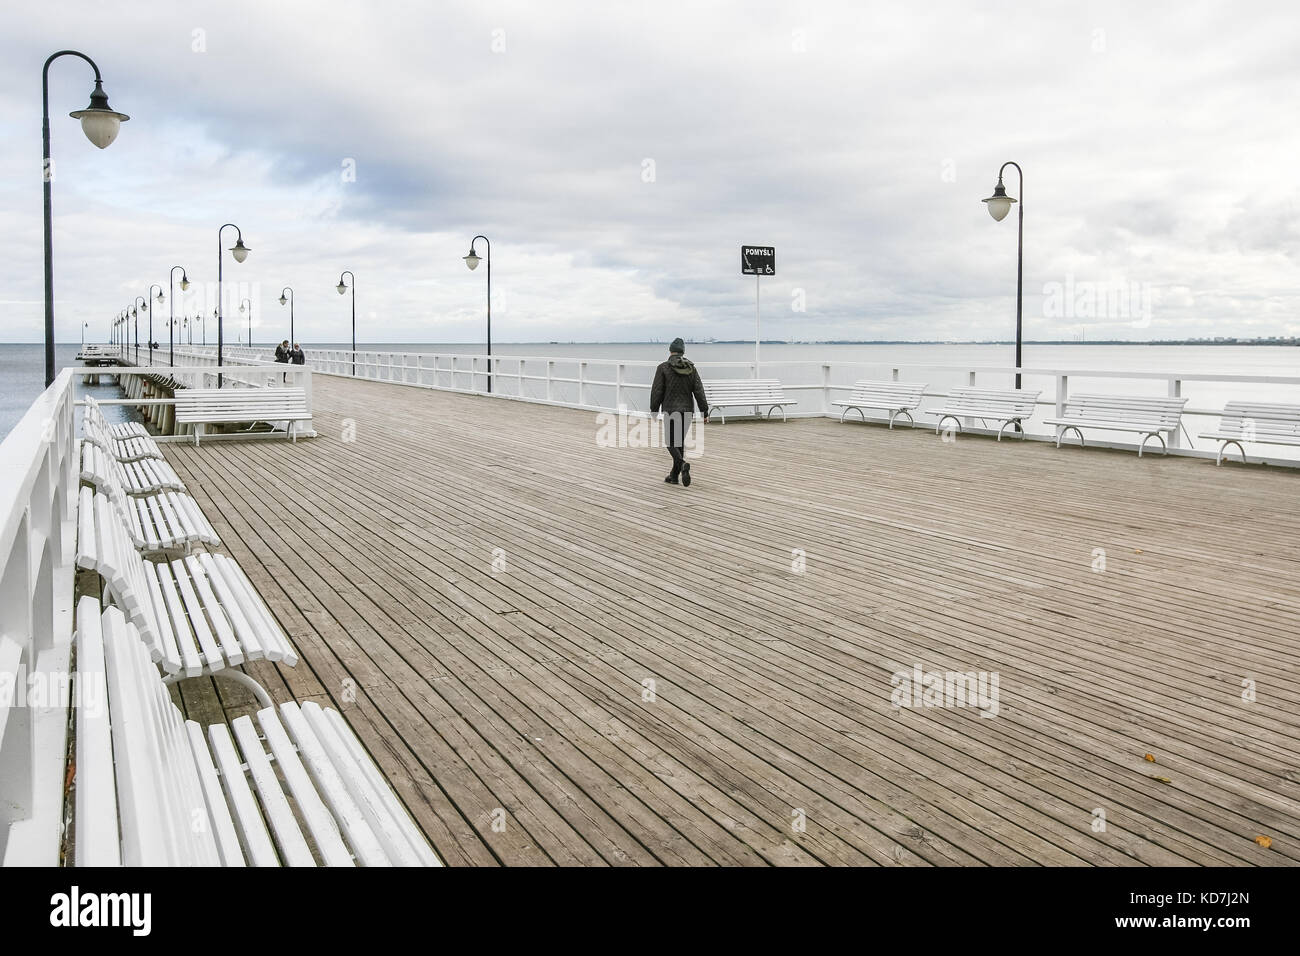 Gdynia, Poland. 10th Oct, 2017. The Orlowo Pier (Molo w Orlowie) where new CCTV camera will be installed is seen Stock Photo